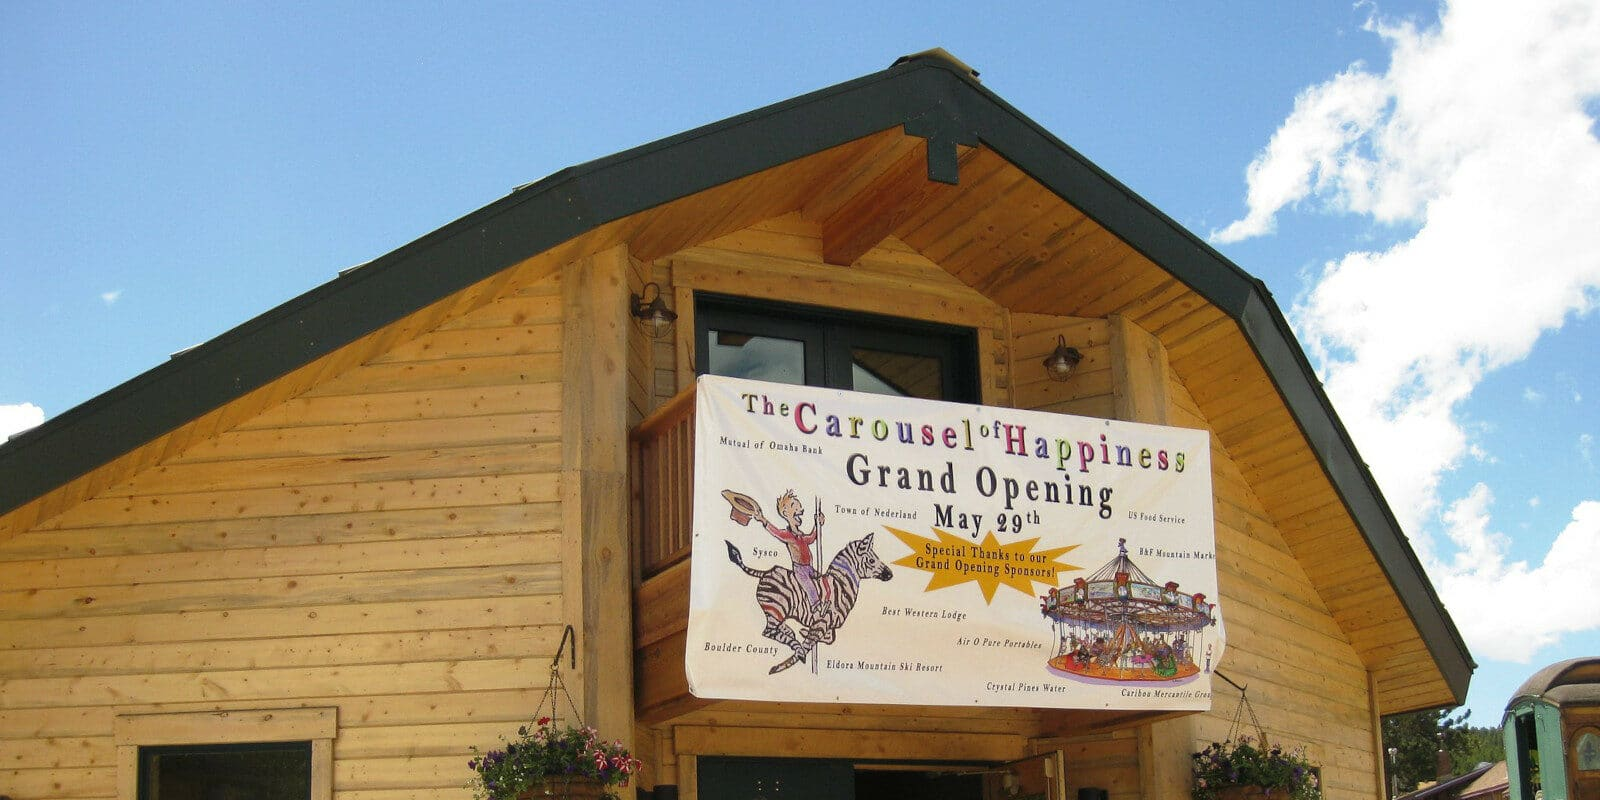 Image of the entrance sign for the Carousel of Happiness in Nederland, Colorado